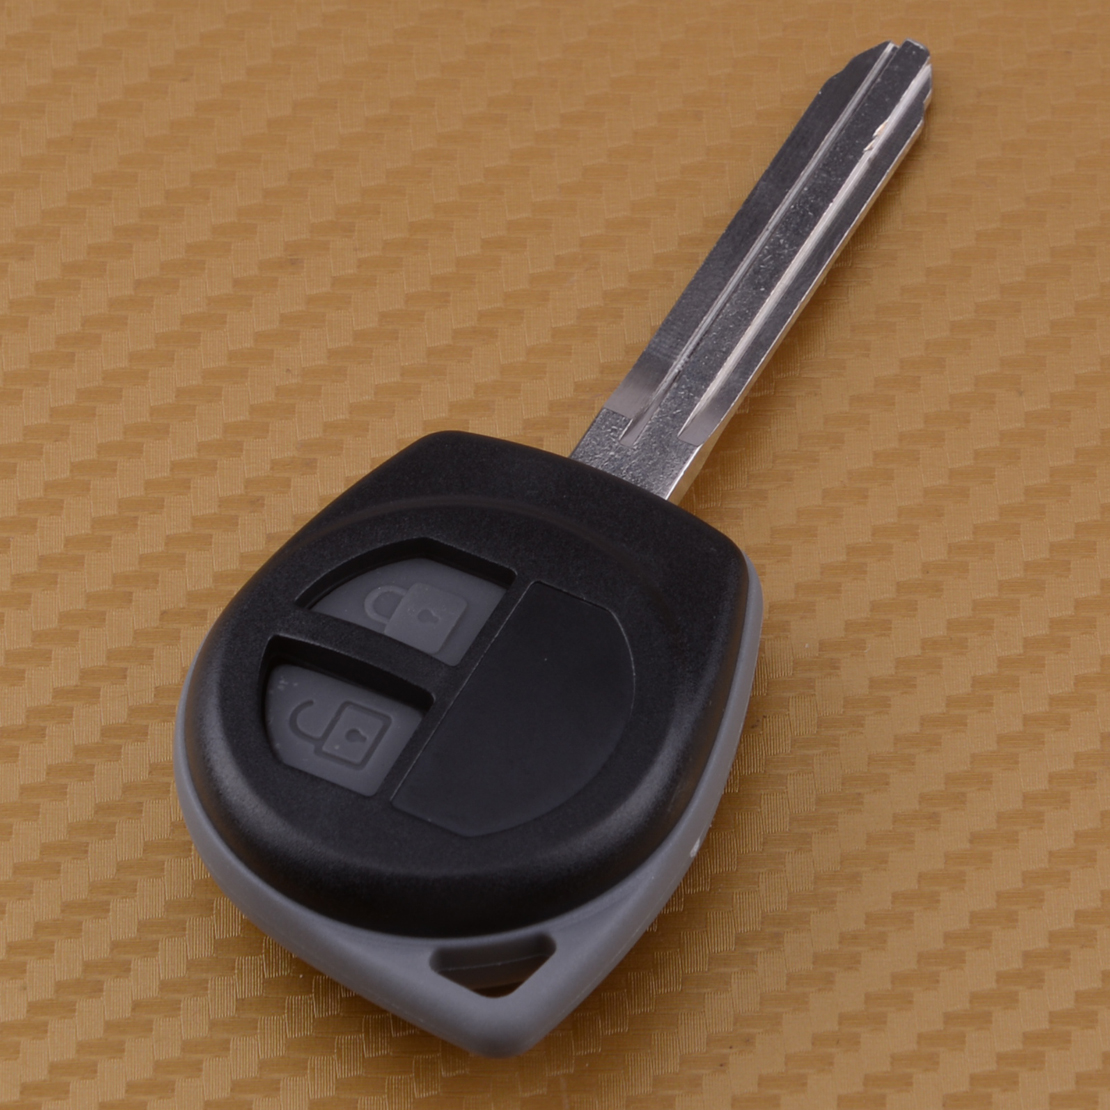 CITALL 2 Buttons Car Replacement Remote Key Shell Case Fob for <font><b>Suzuki</b></font> <font><b>Grand</b></font> <font><b>Vitara</b></font> Swift Liana 2003 <font><b>2004</b></font> - 2009 2010 2011 2012 image